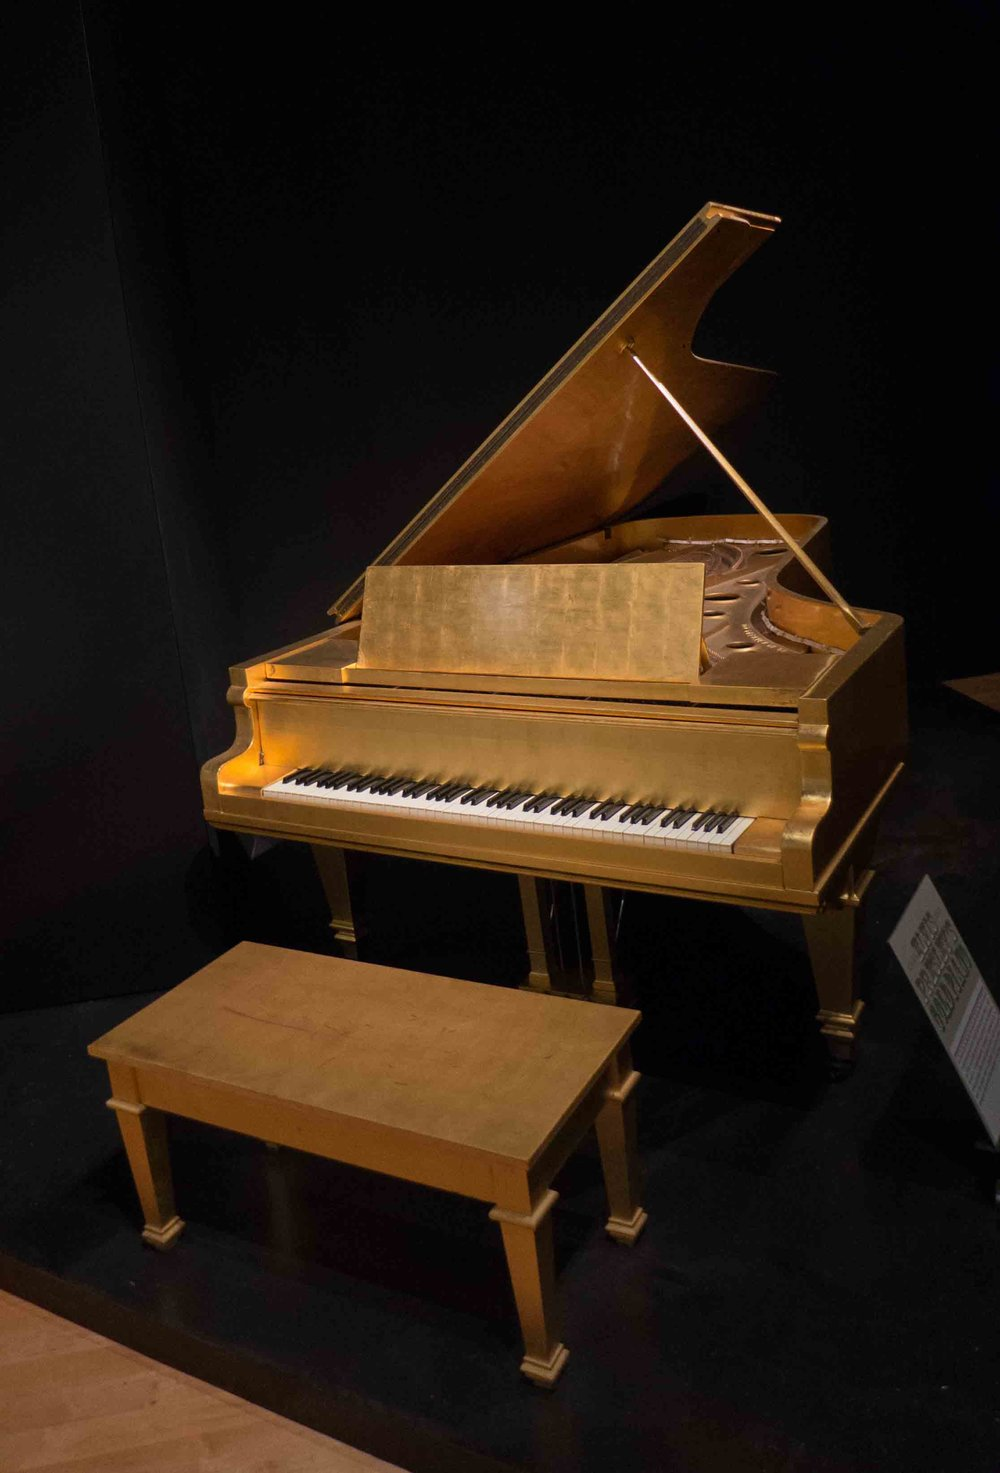 The King's all gold piano.